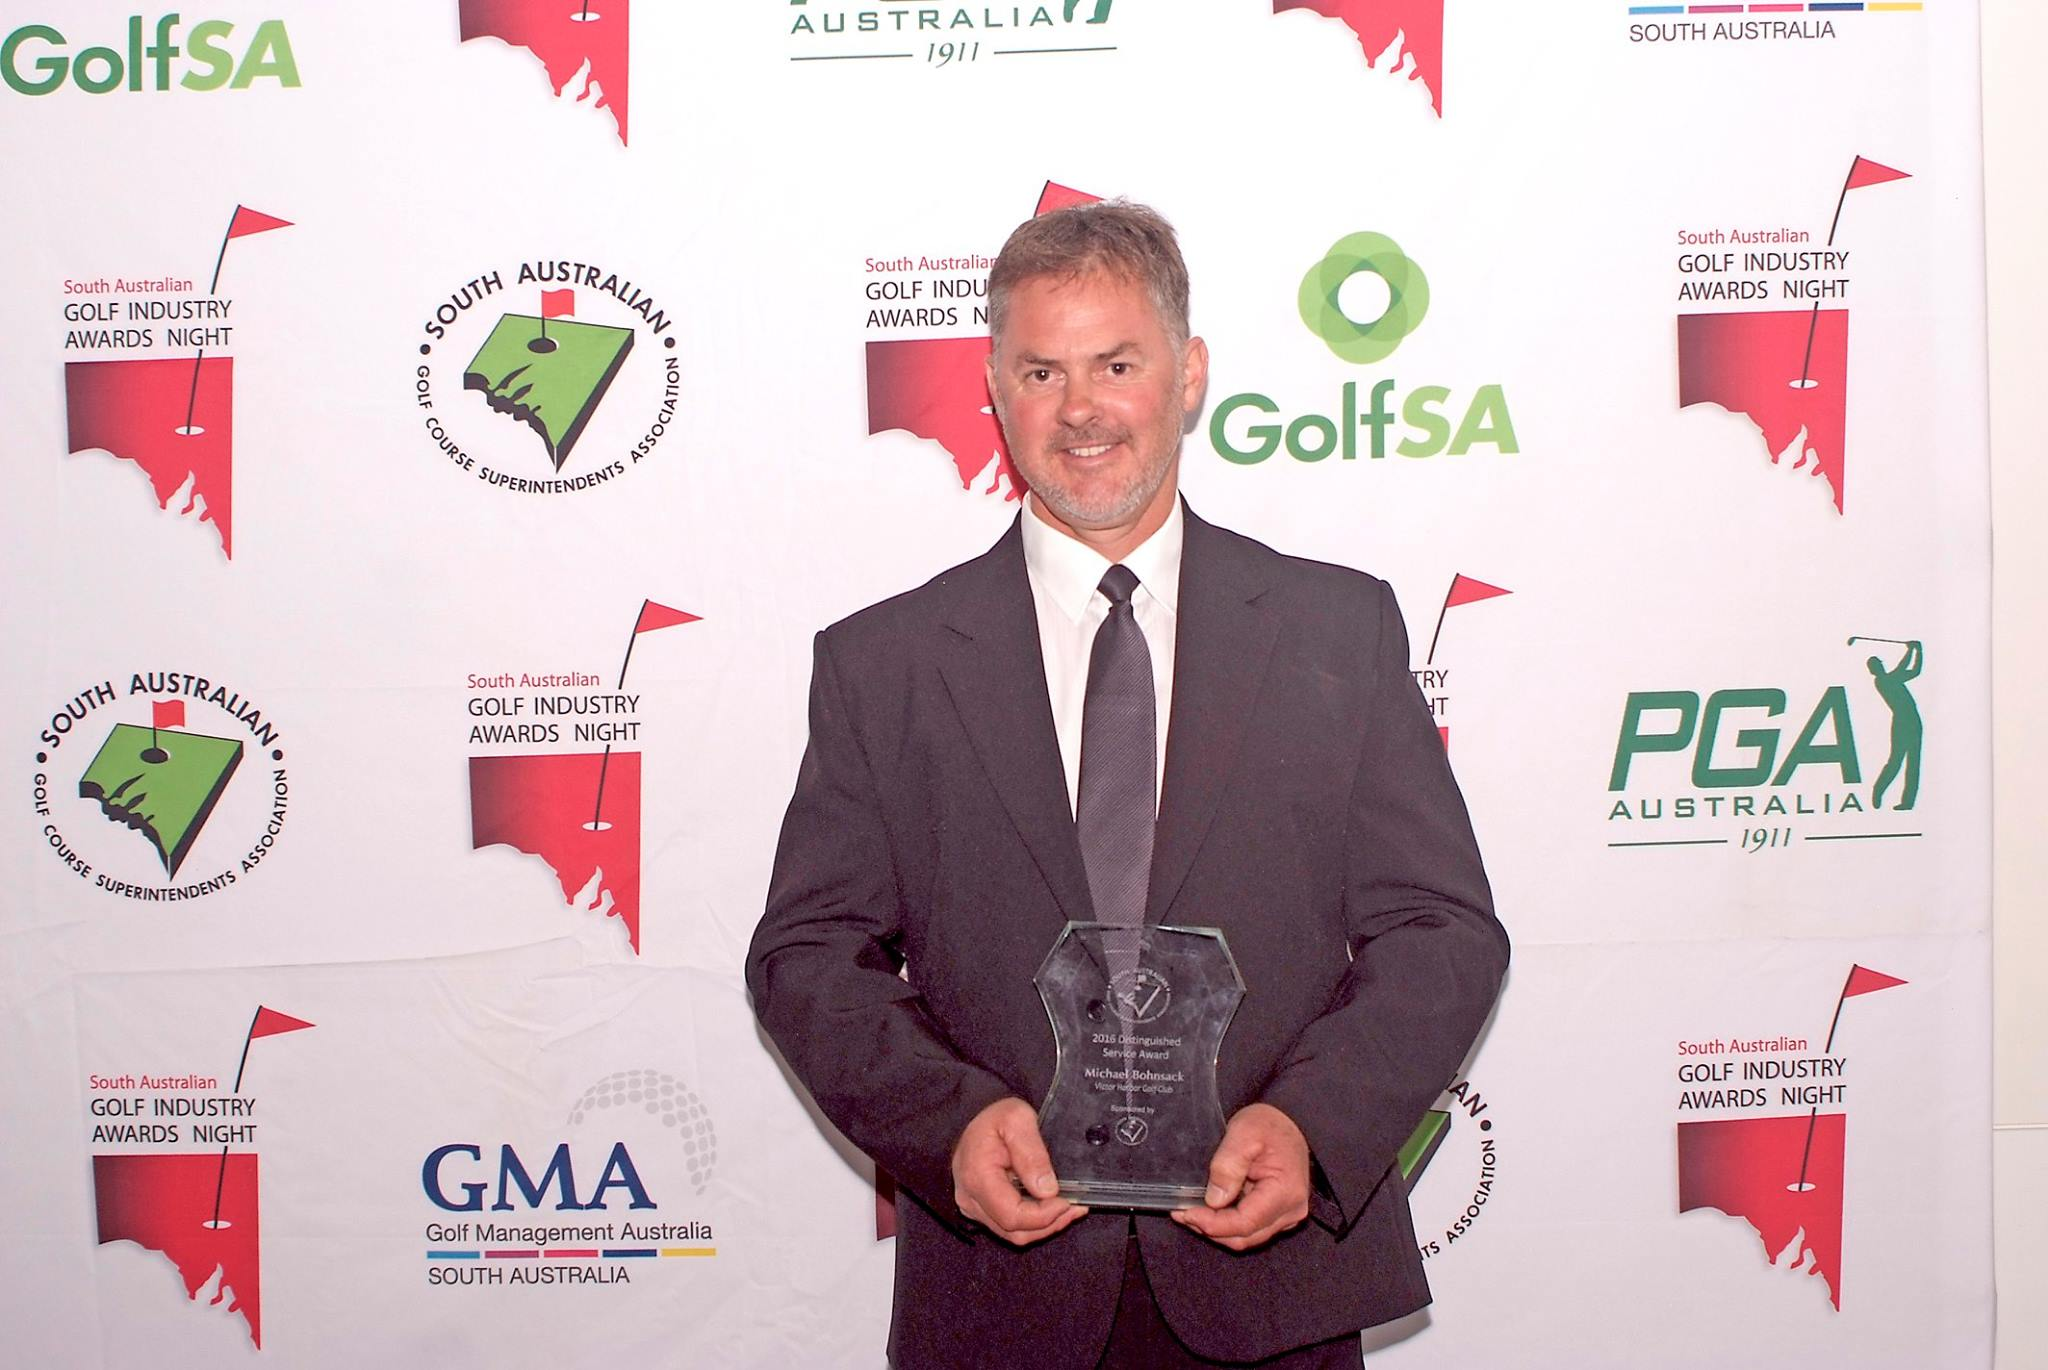 SA Golf Industry Awards Night (3).jpg